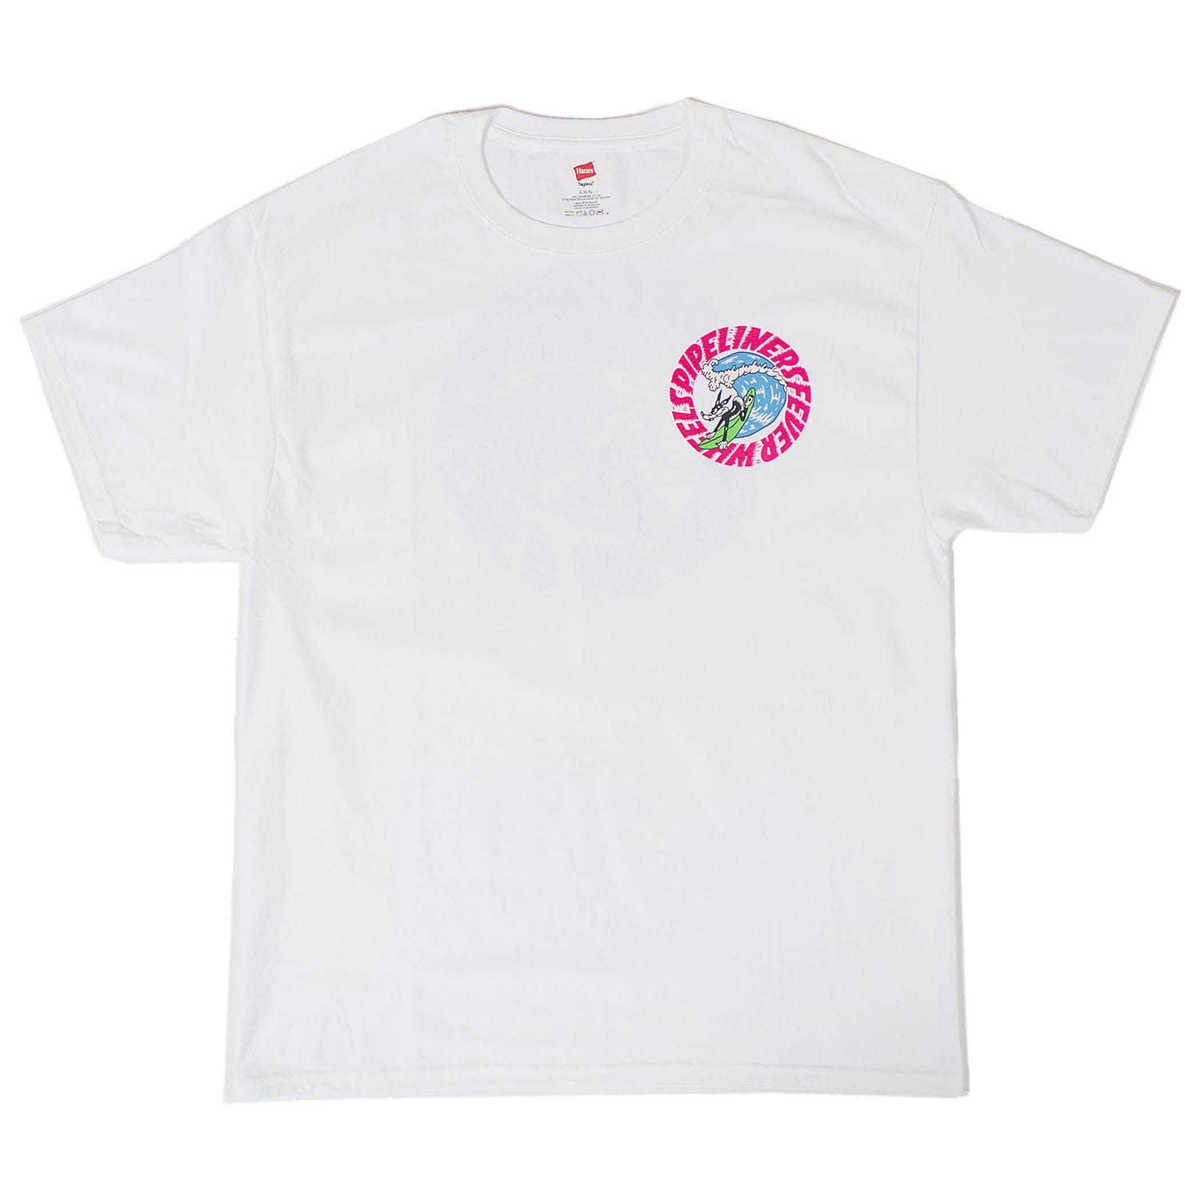 Pipeliners Fever Tee (White)